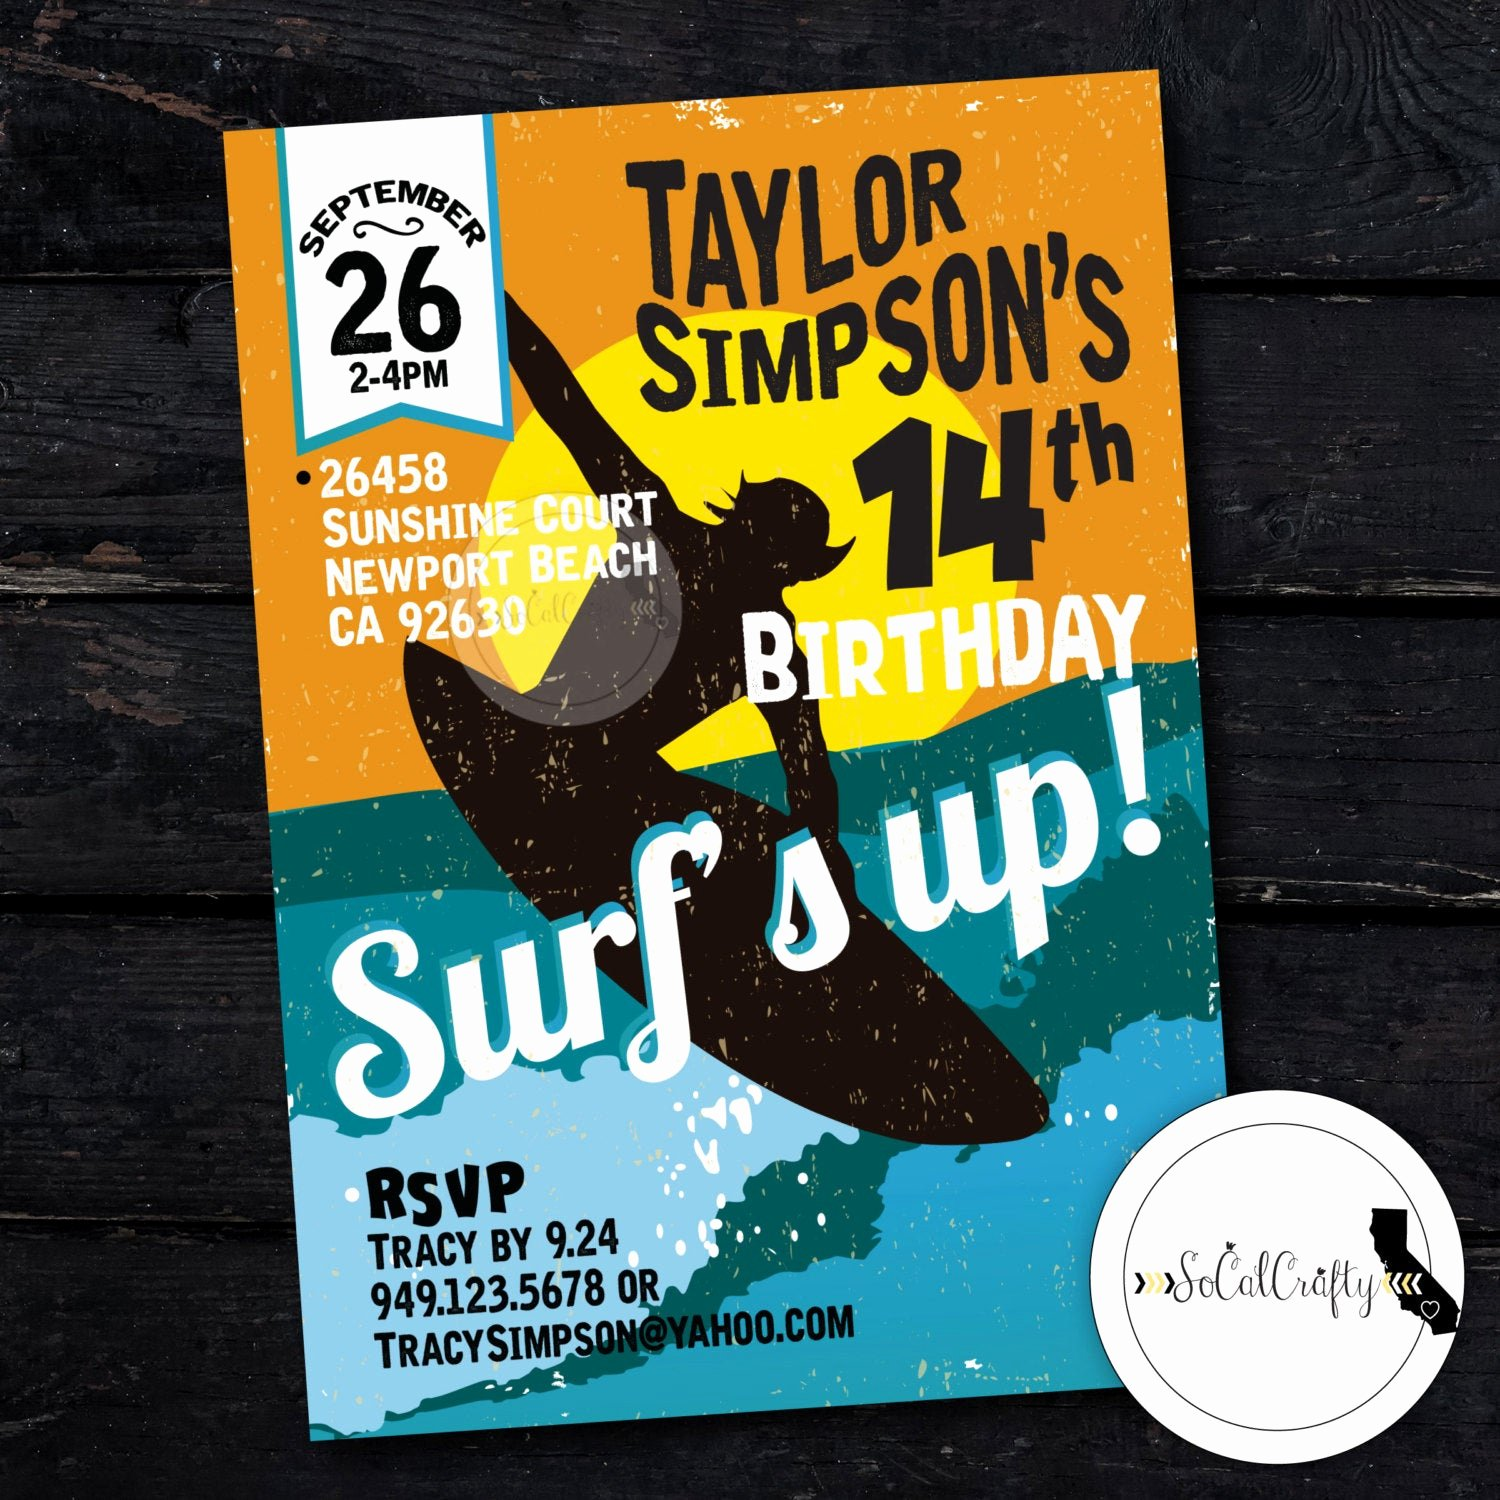 Beach Birthday Party Invitations Awesome Surf Birthday Party Invitation Beach Surfer Invite Surfing